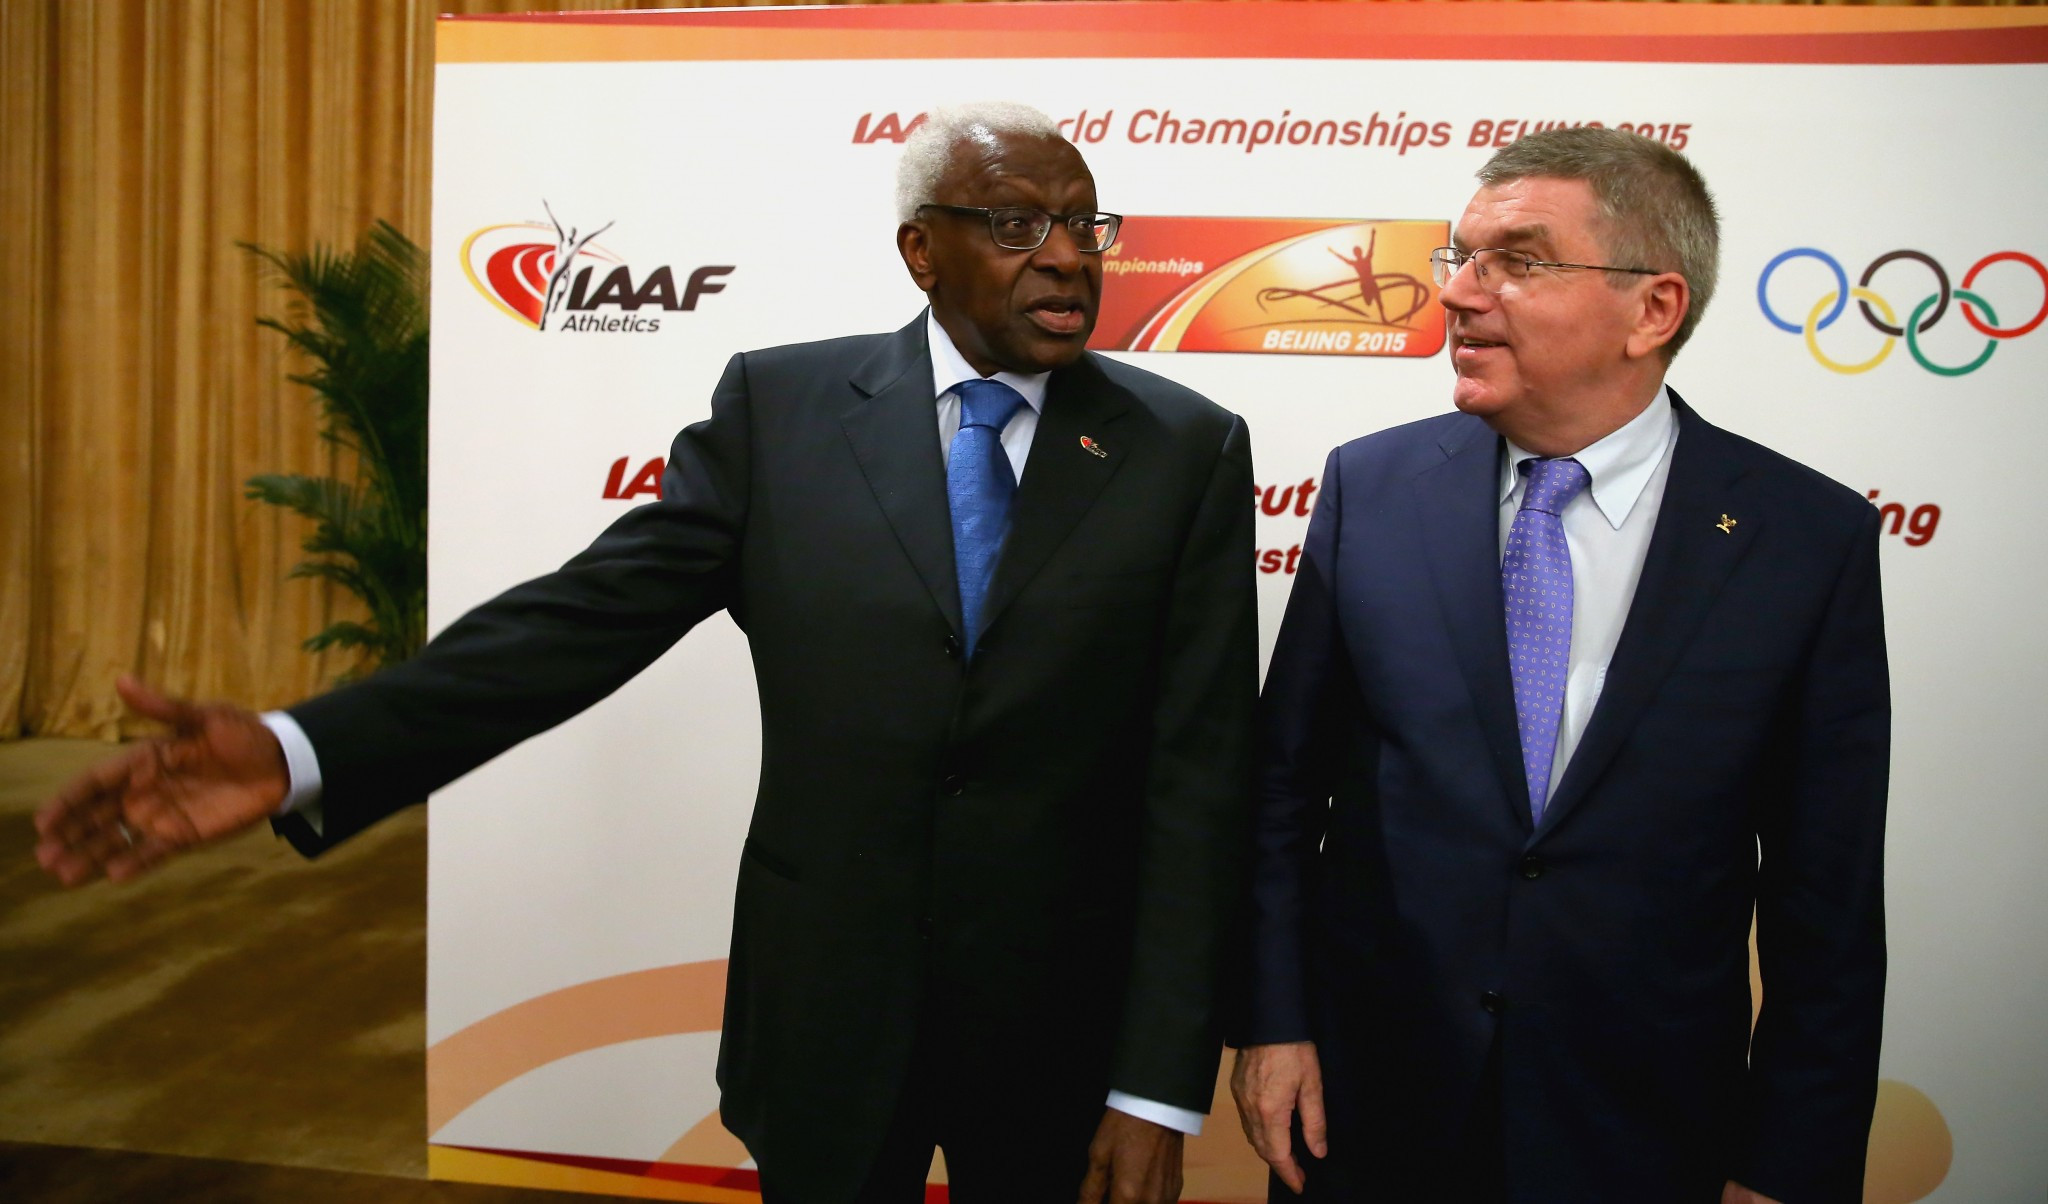 IOC President Thomas Bach, right, has claimed they will sanction any members, like former IAAF President Lamine Diack, left, found guilty of being involved in corruption ©Getty Images